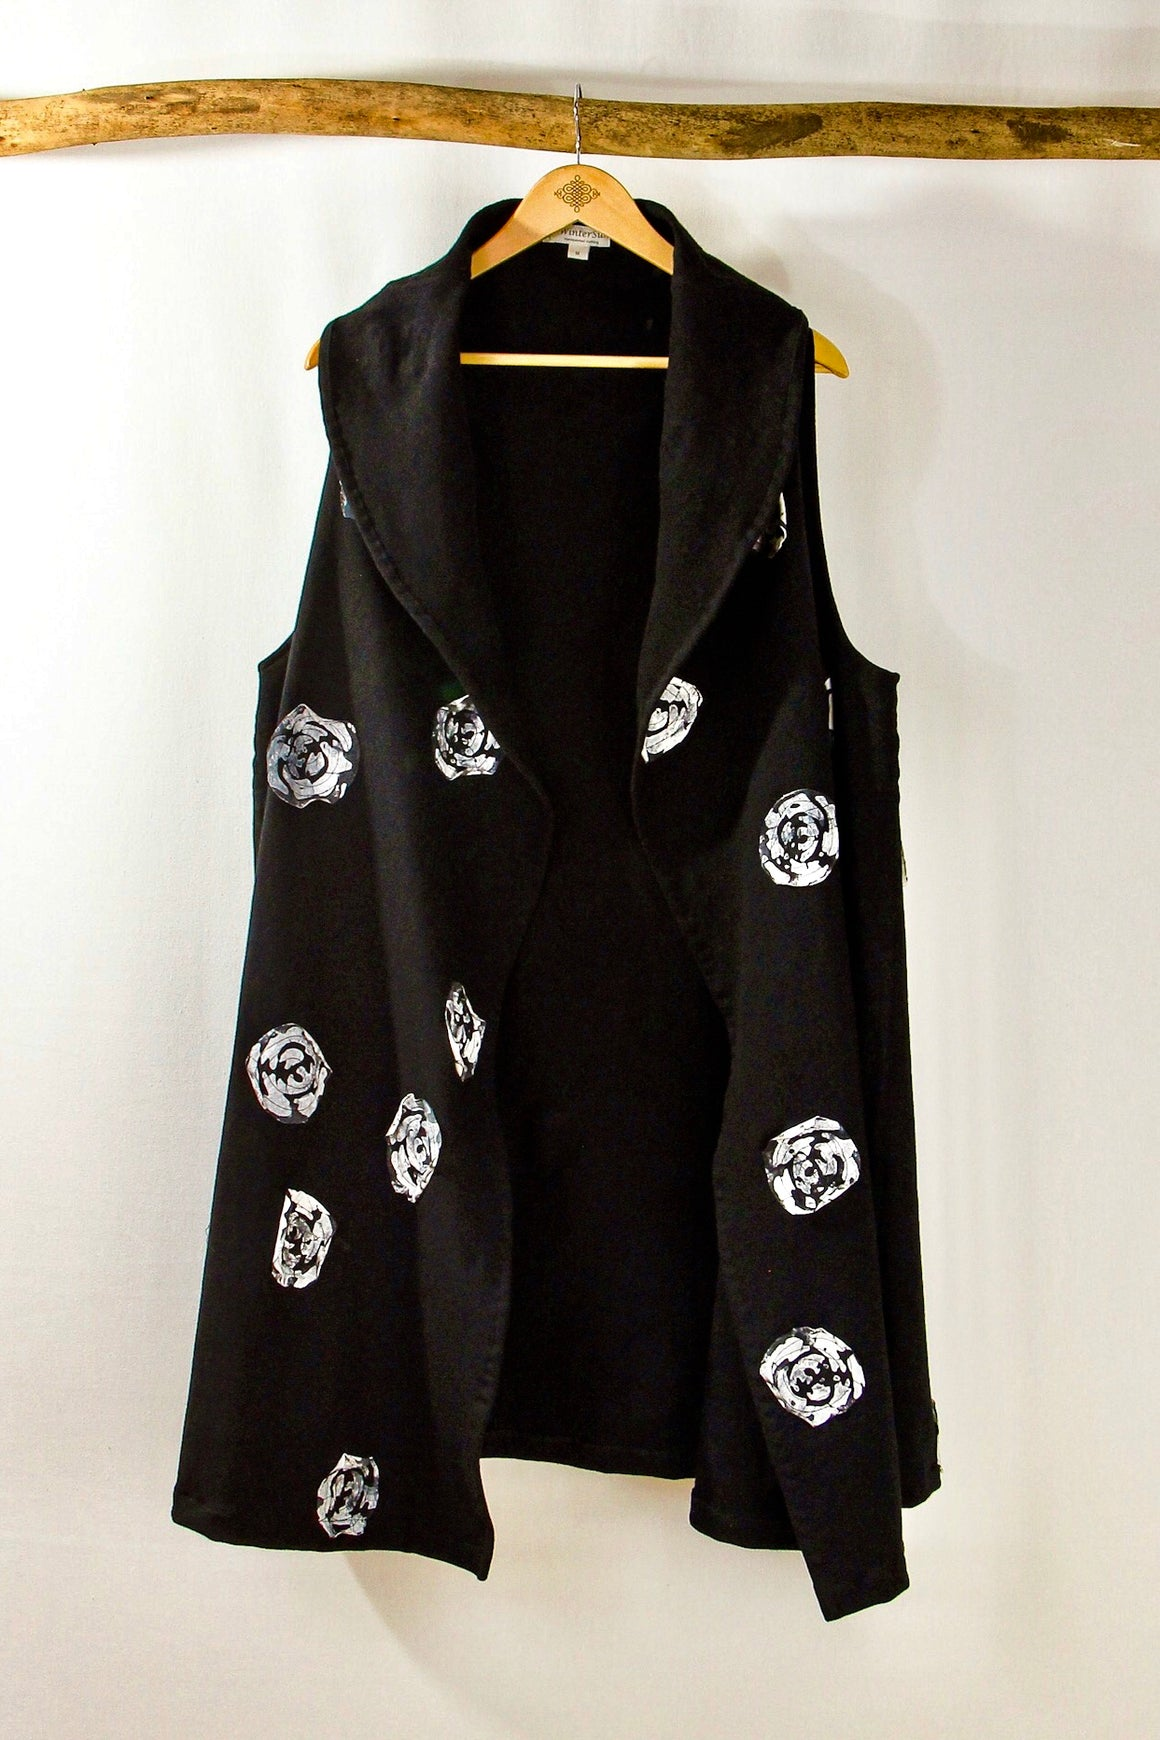 Frenchish- Big Fleece Appliqué Vest - Separates